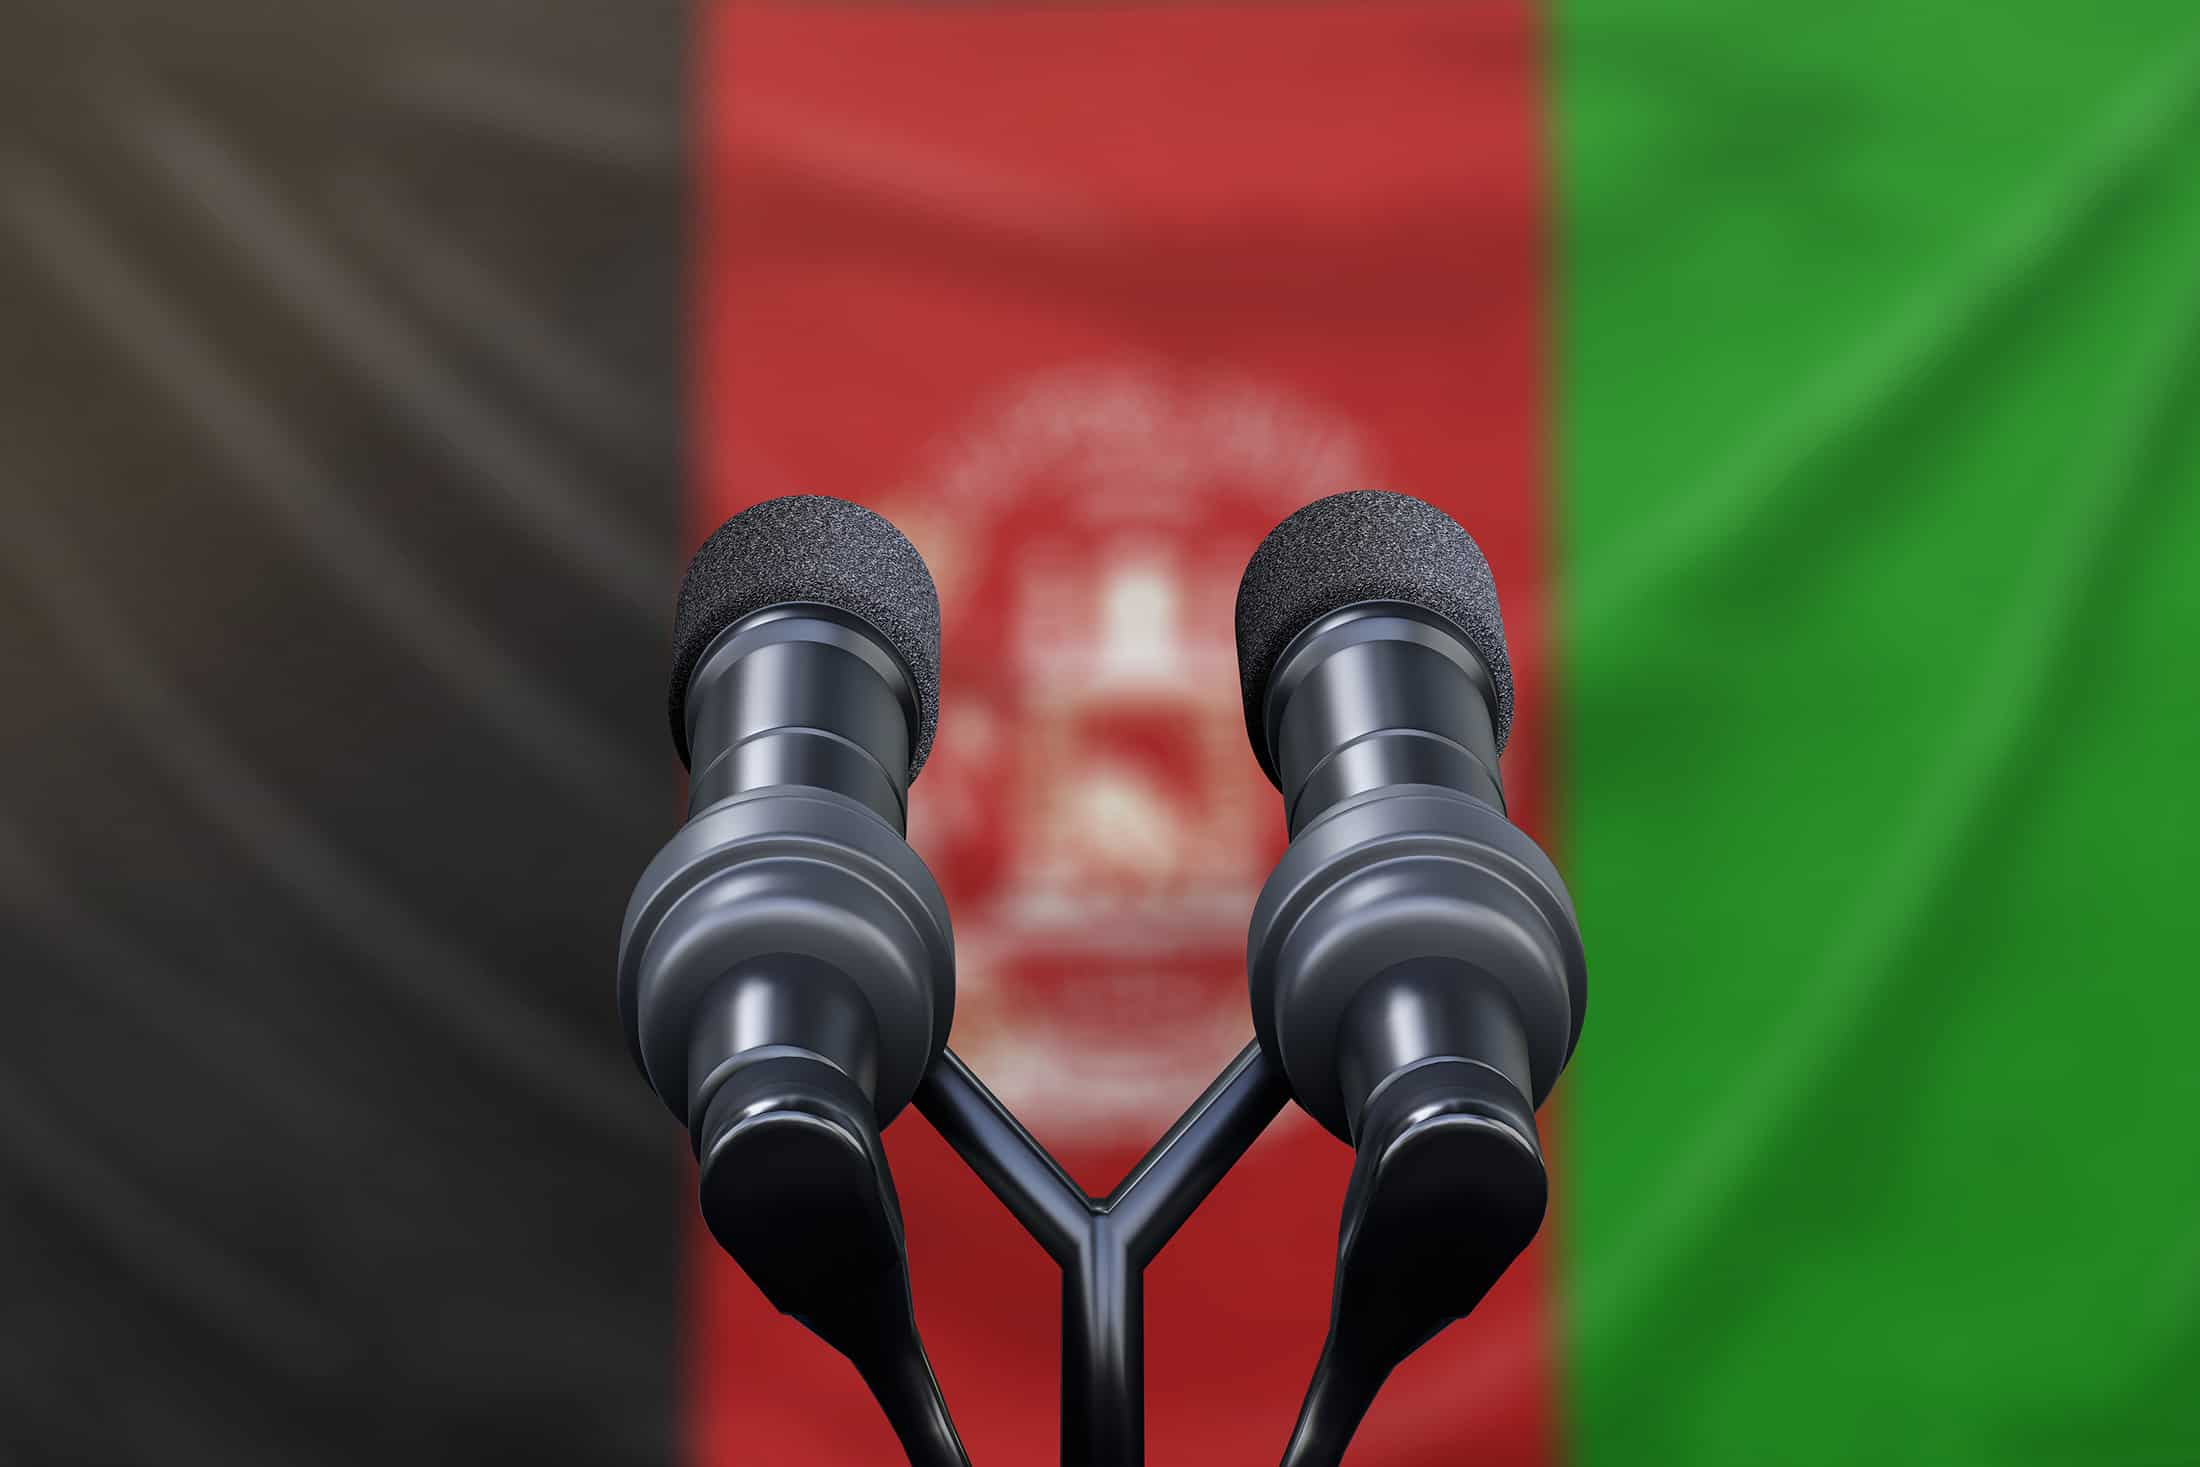 Newsrooms without women: The future of journalism in Afghanistan